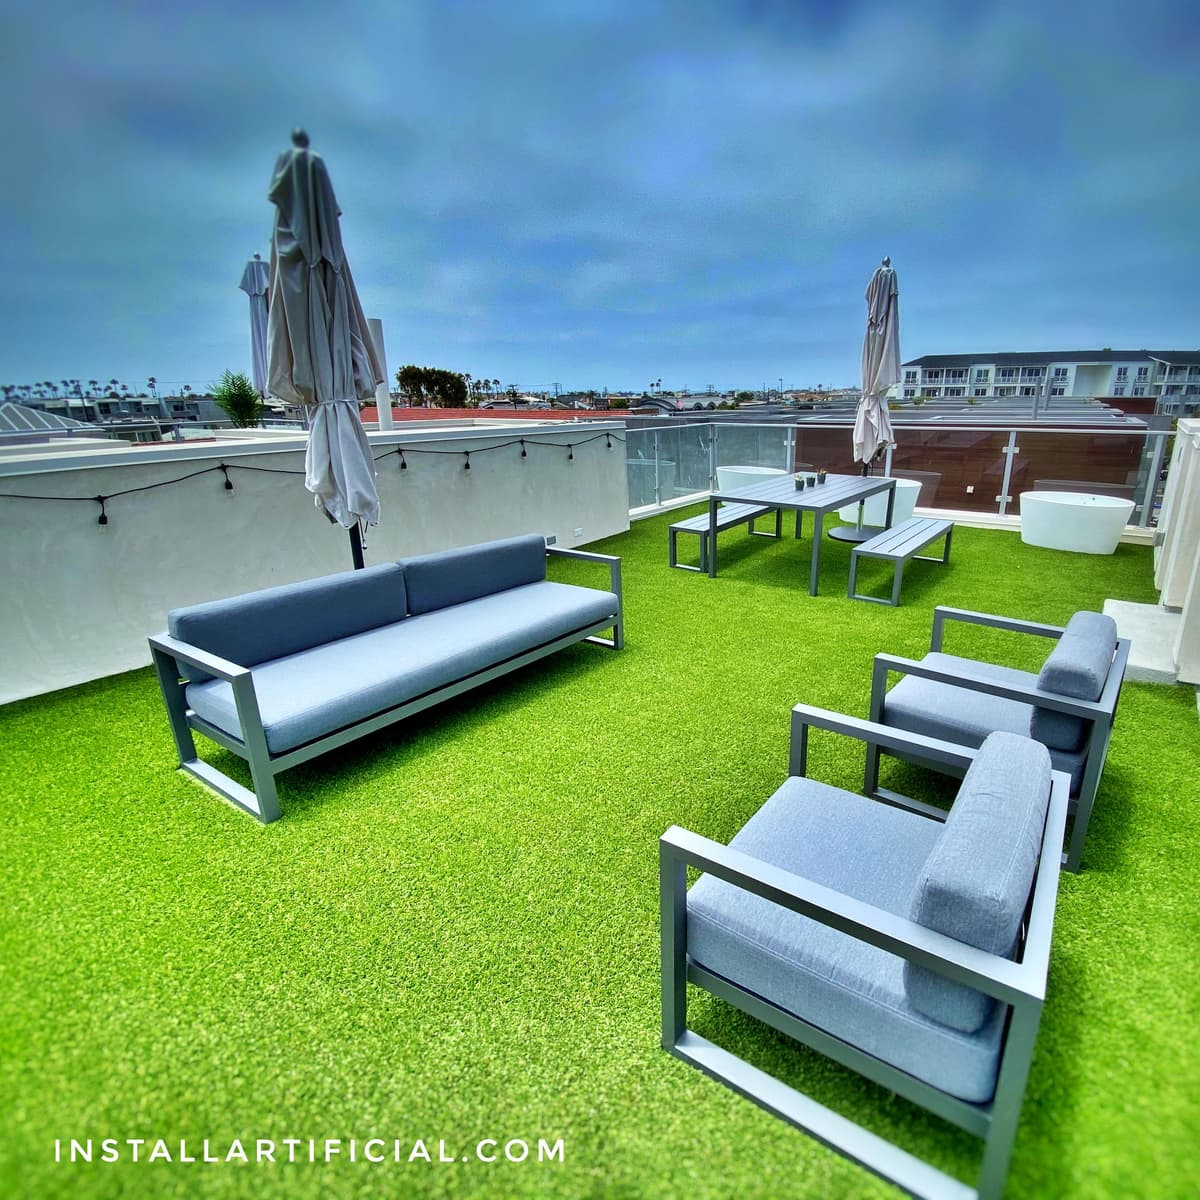 Converted rooftop into patio with artificial grass, residential